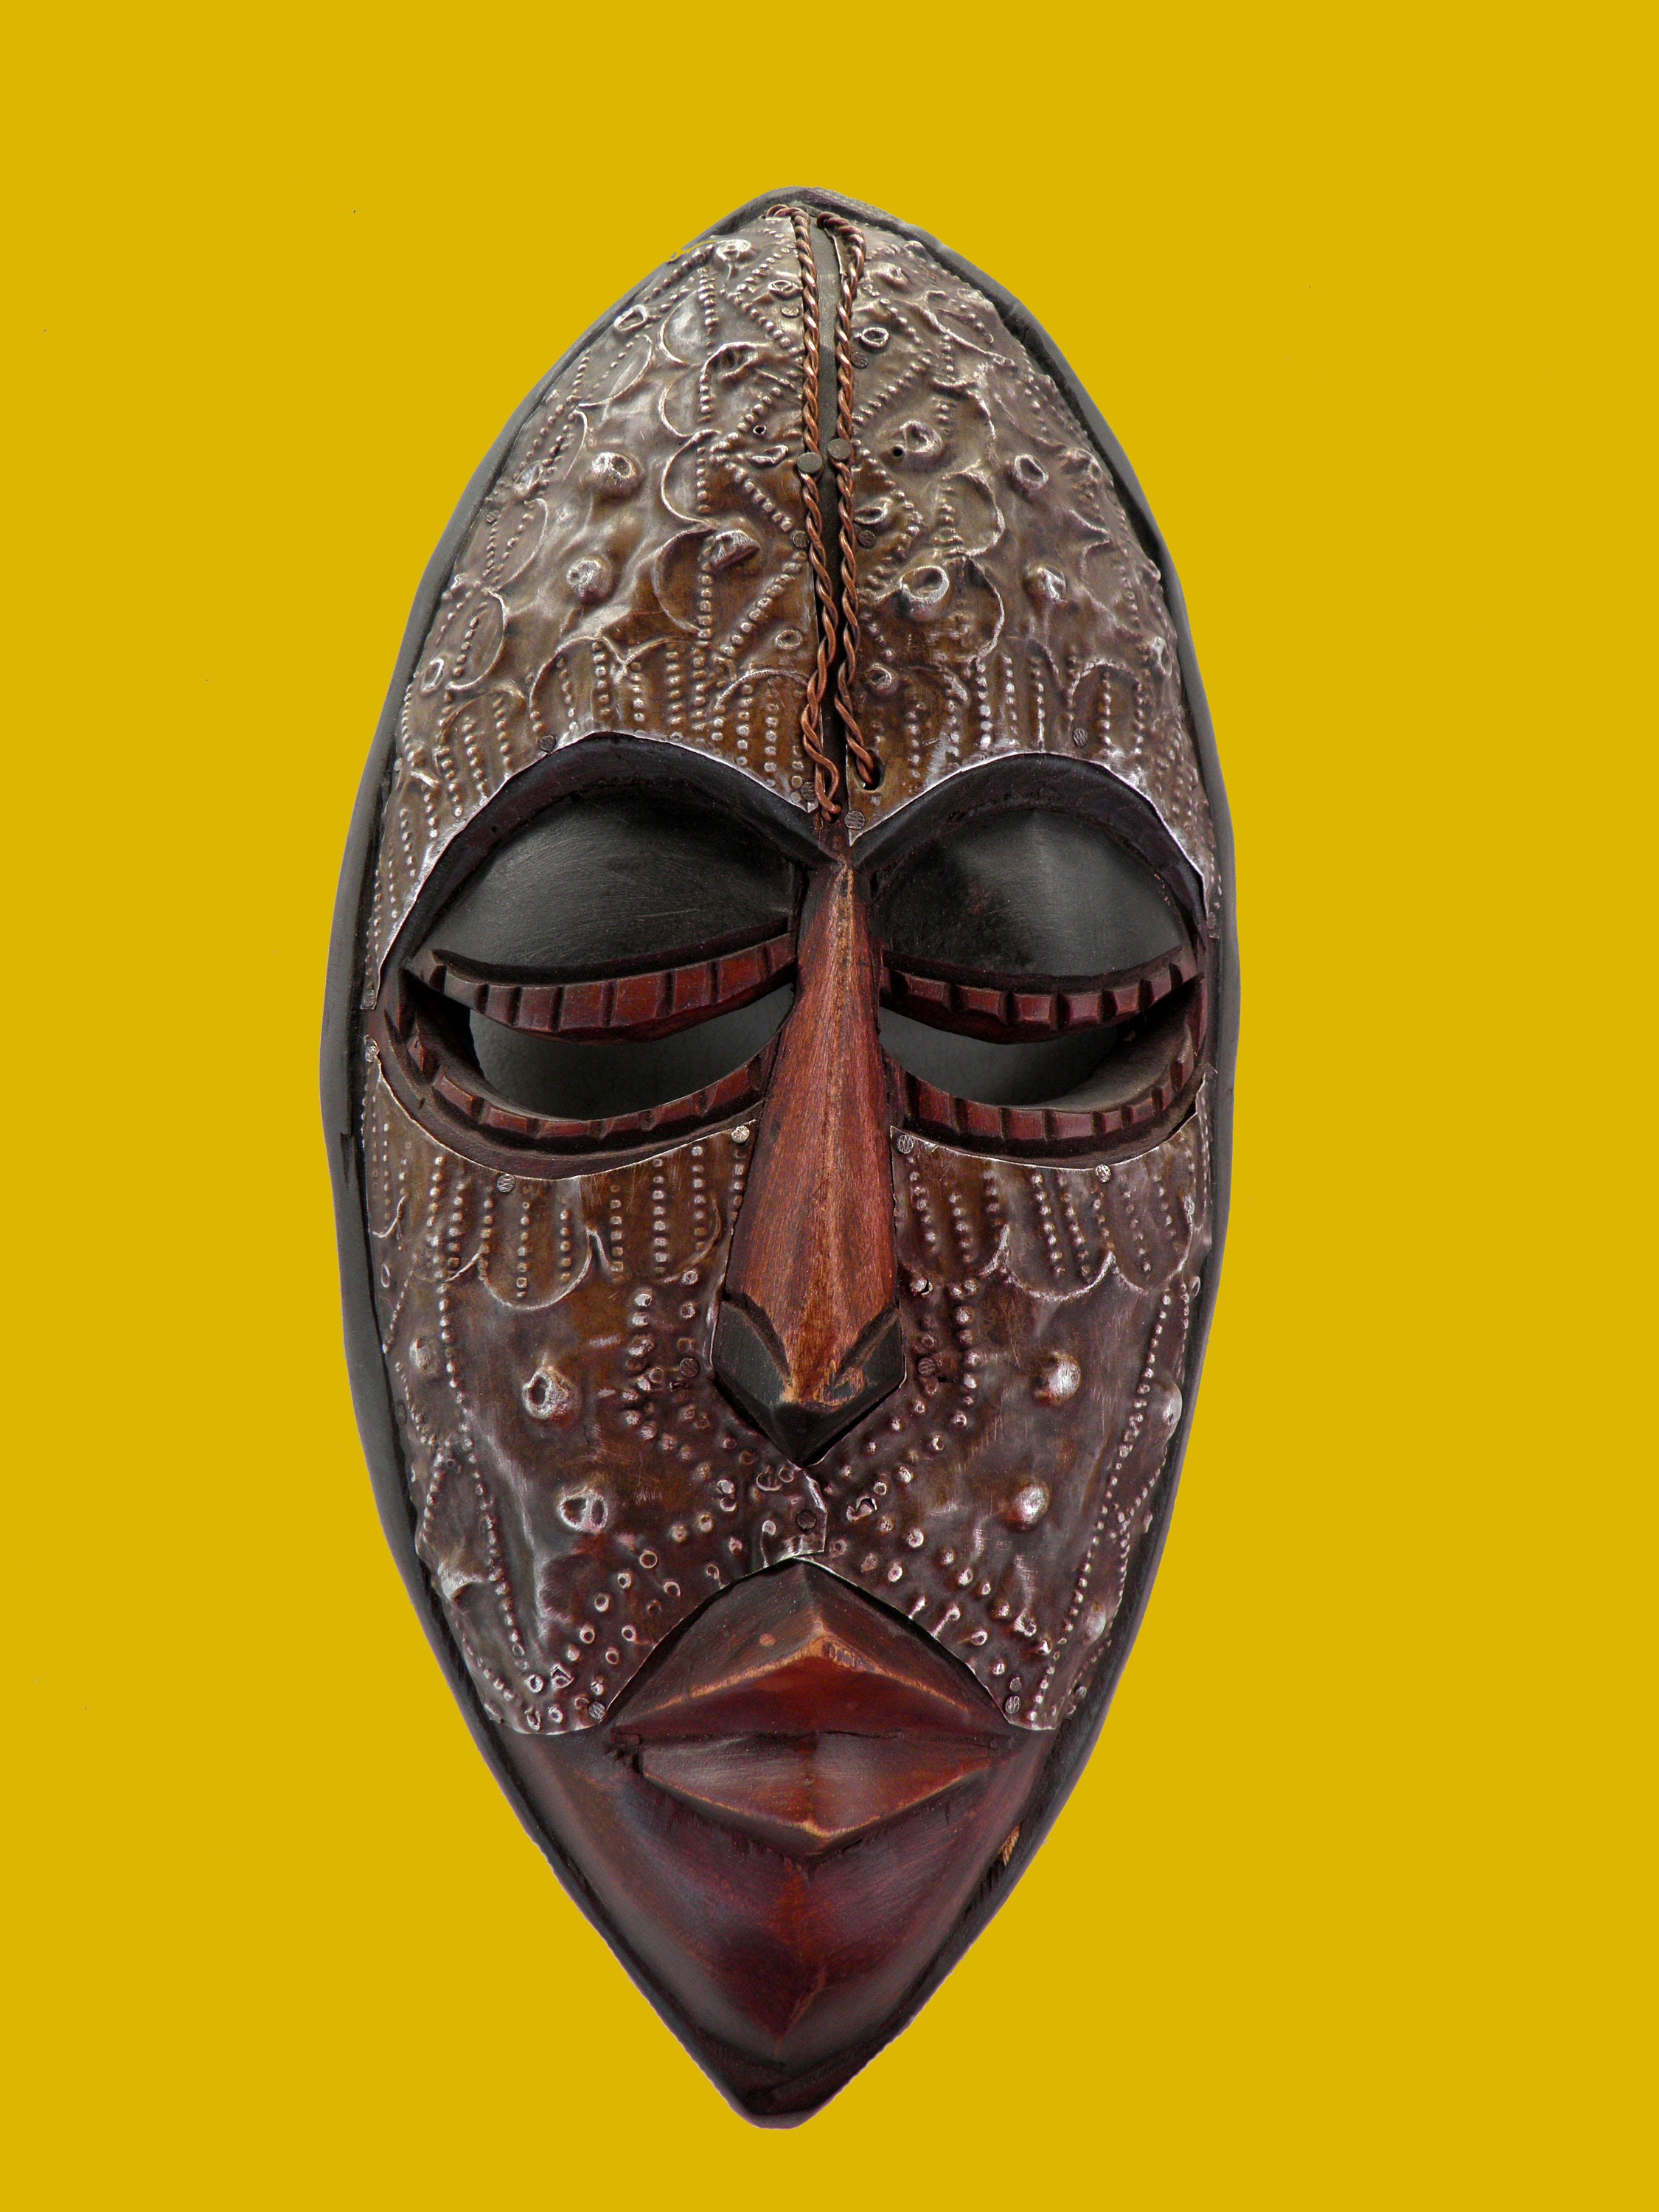 Ghana African Wood Face Mask Primitive Ceremonial Wall Art | Etsy